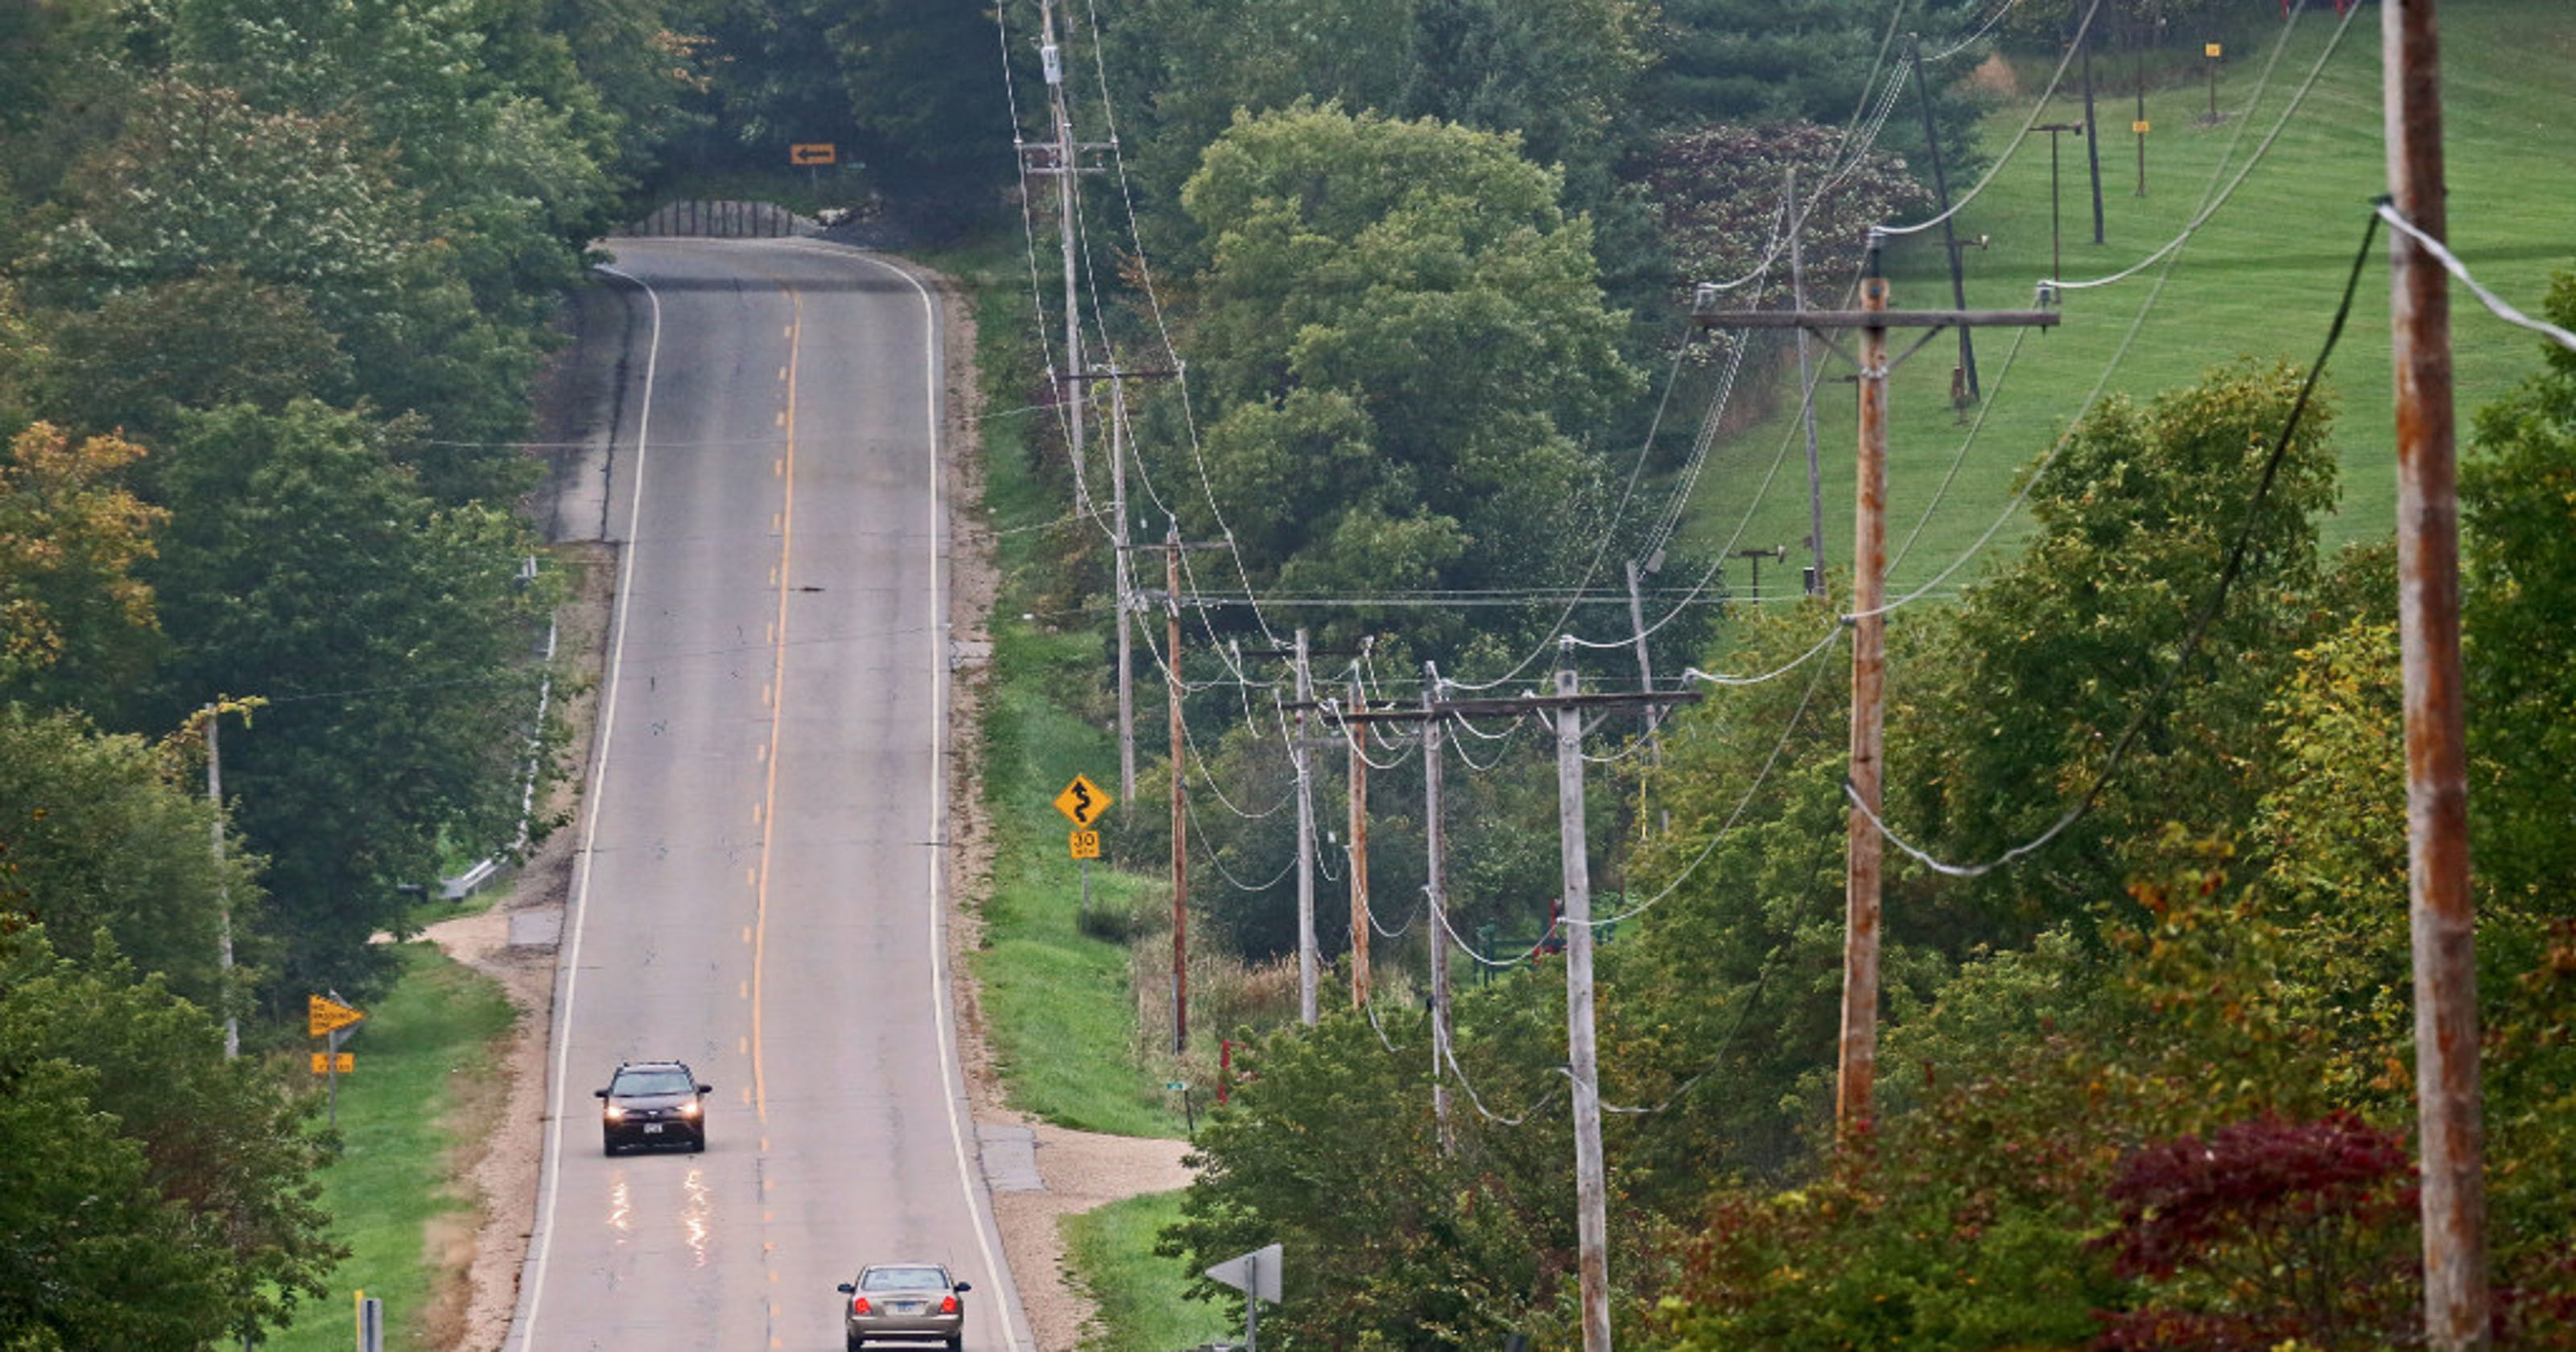 AT&T seeks to deliver the internet over power lines